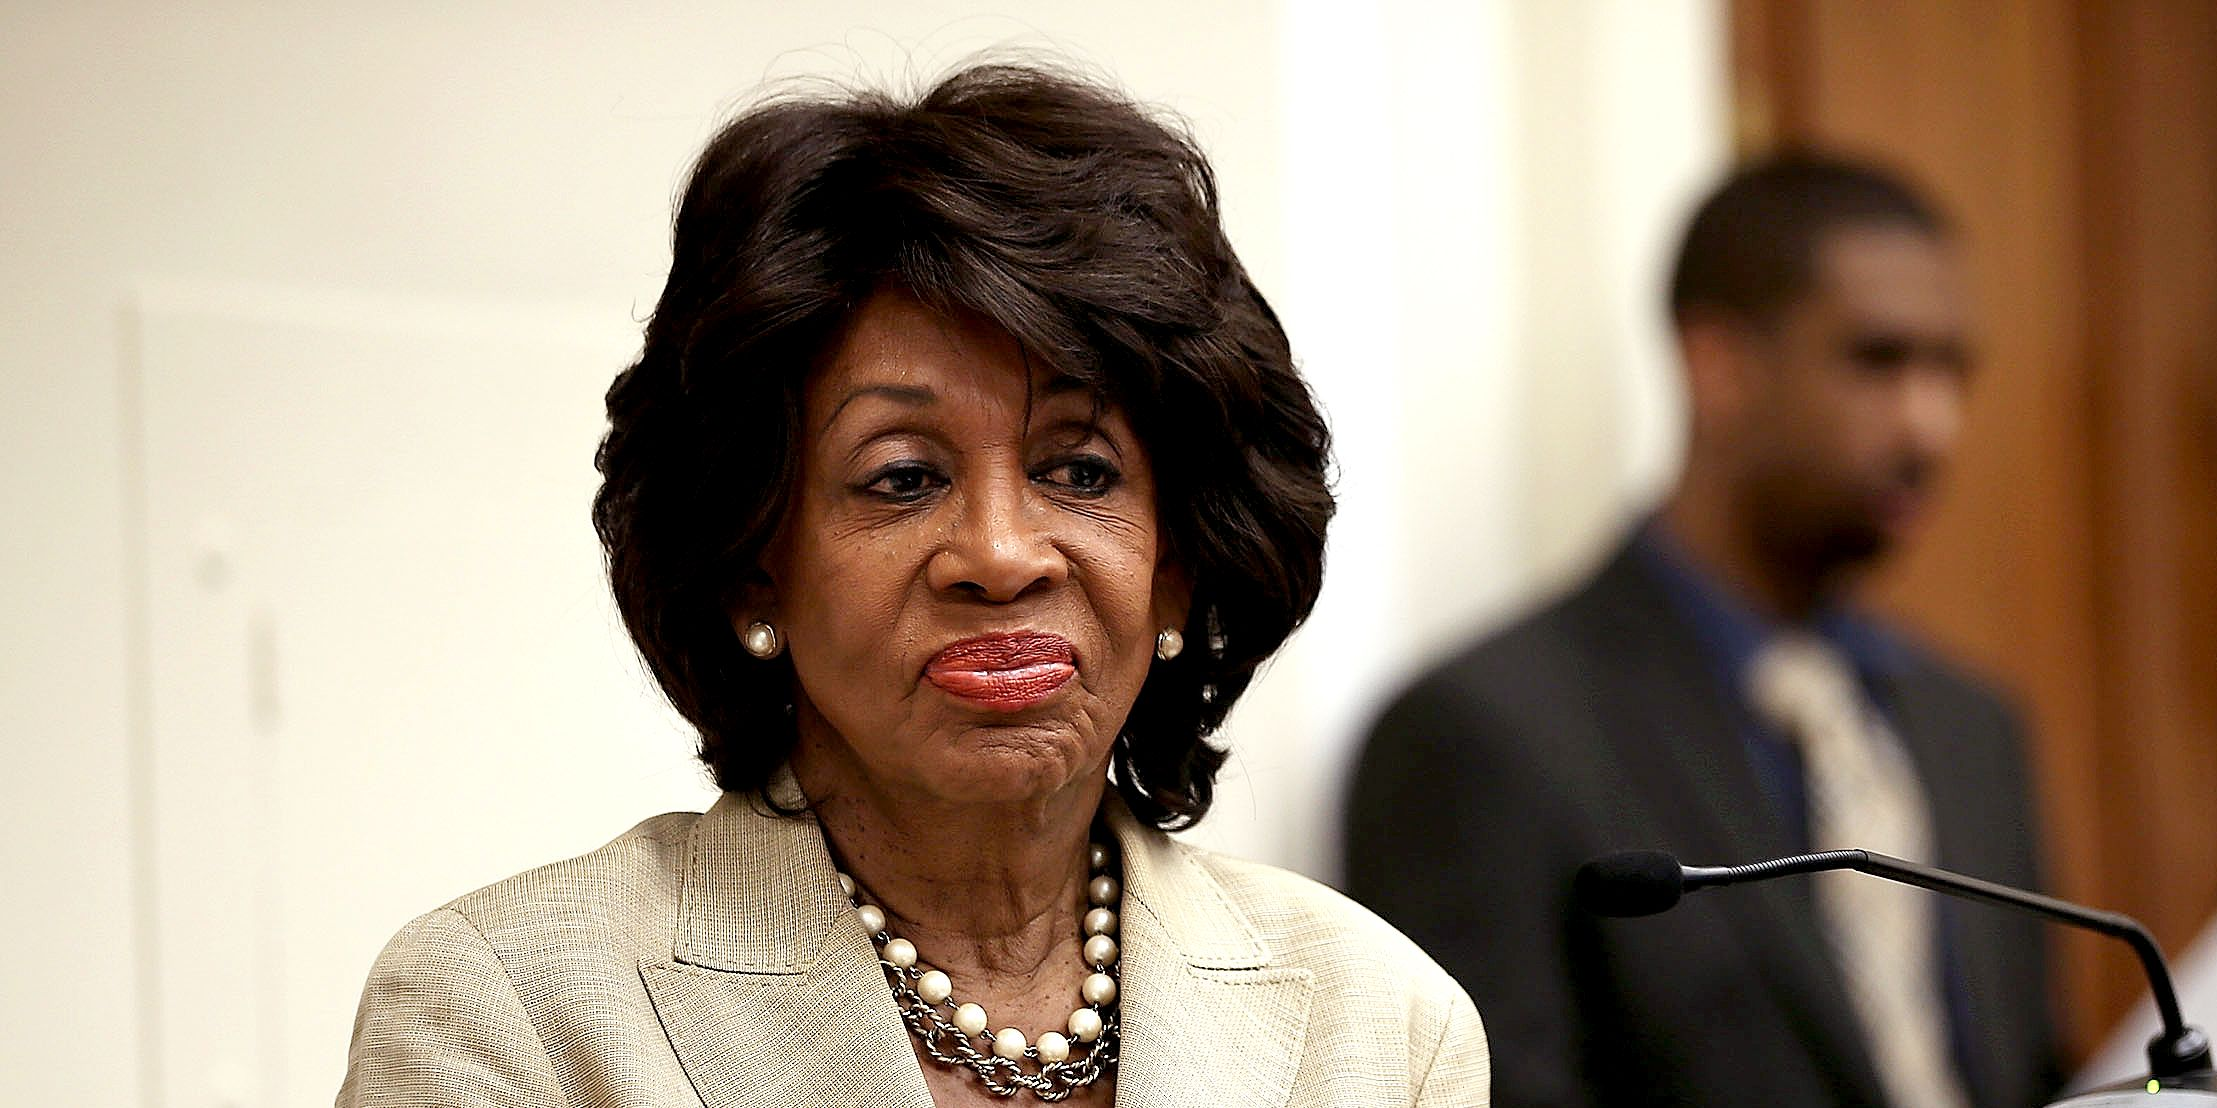 Maxine Waters Brain Farts Again